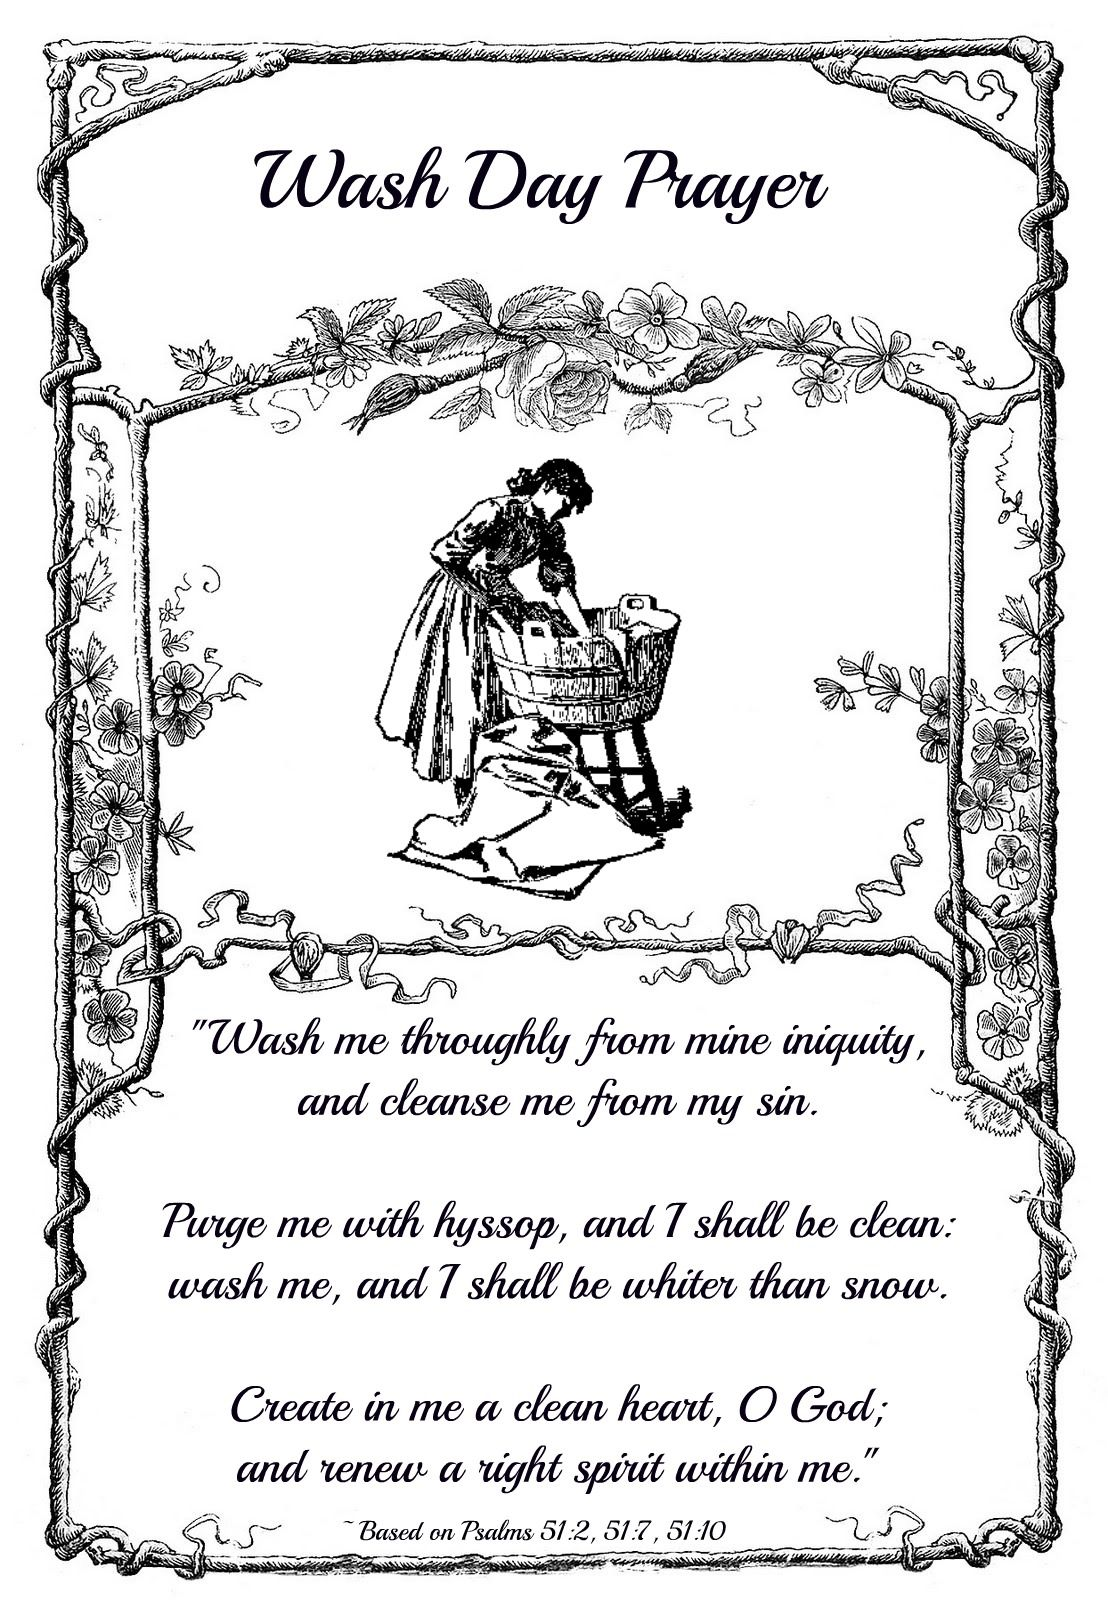 Wash Day Prayer Free Inspirational Printable With Images